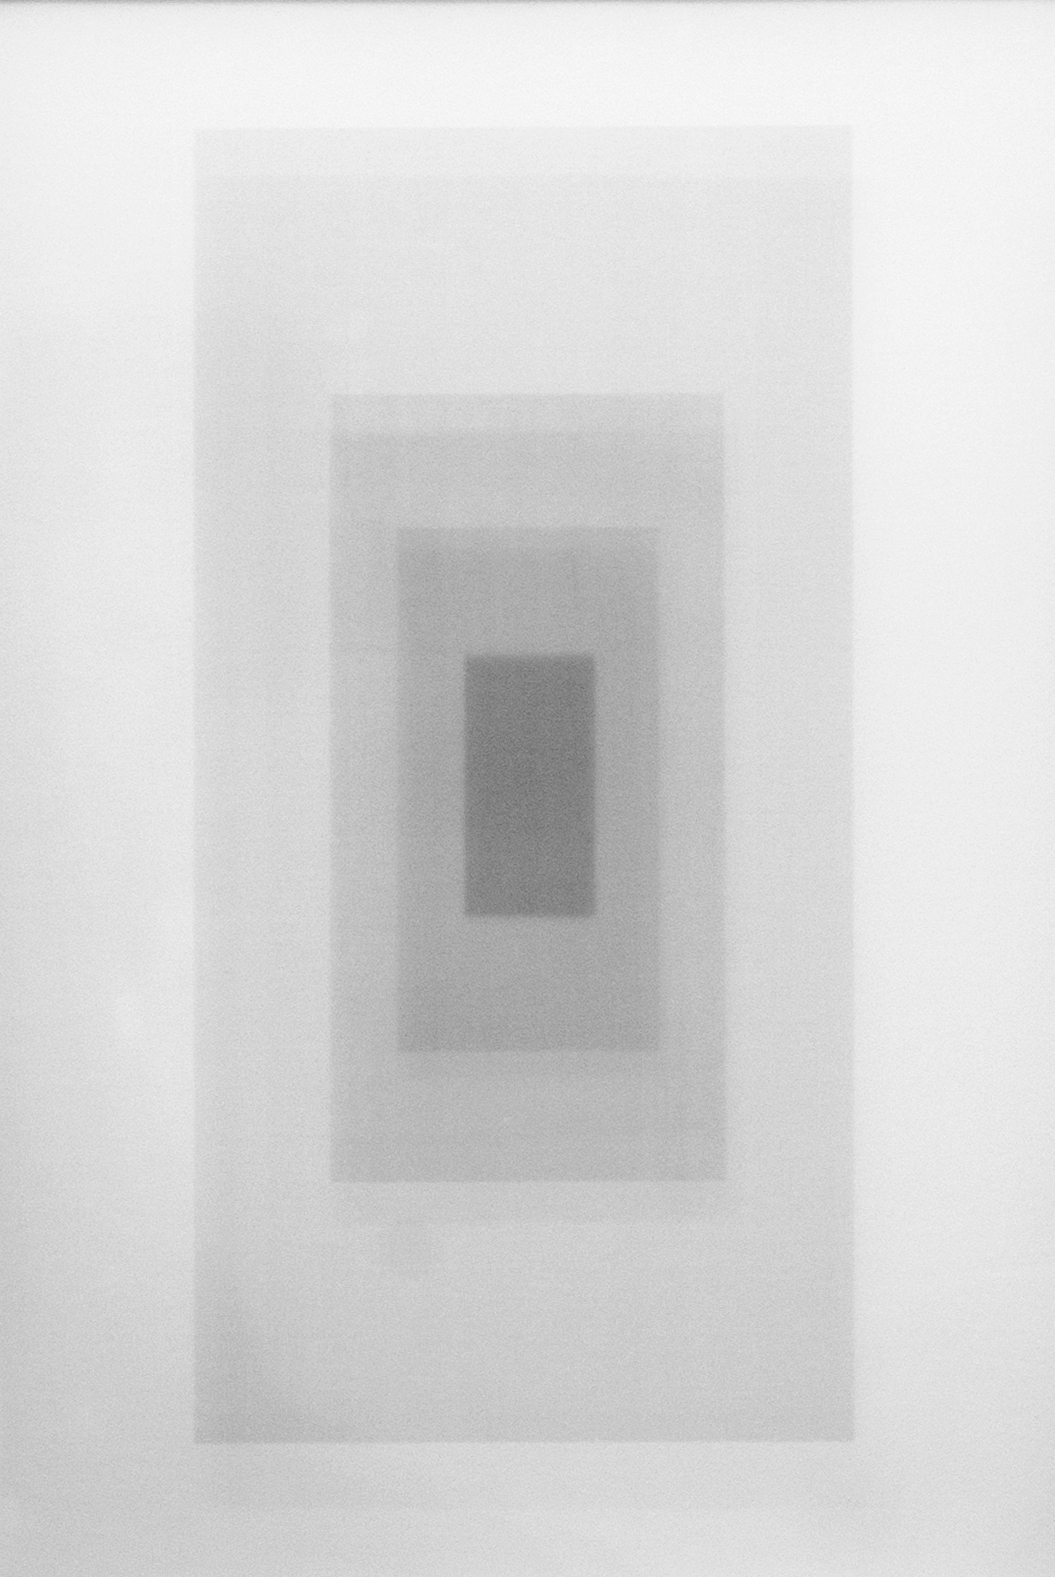 Sebastian Ingram /  Untitled   / 2016 / Laser print on acetate